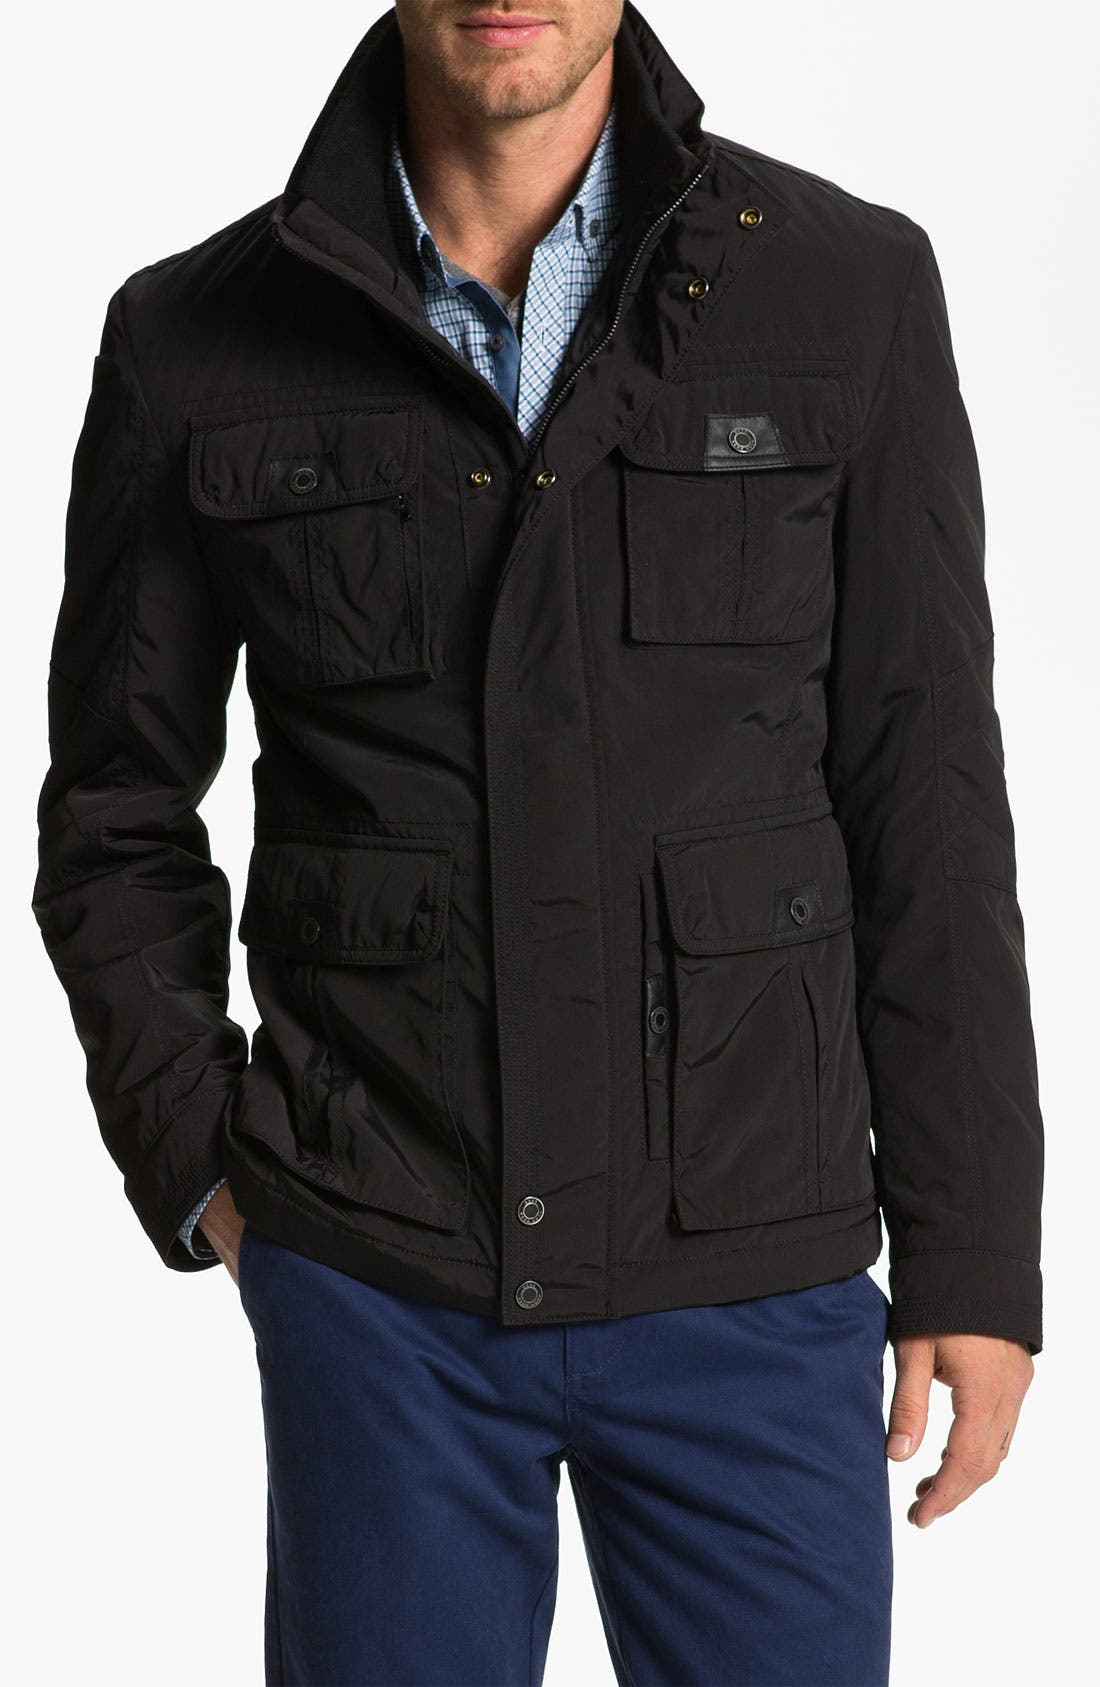 Main Image - BOSS Black 'Cosey' Trim Fit Jacket